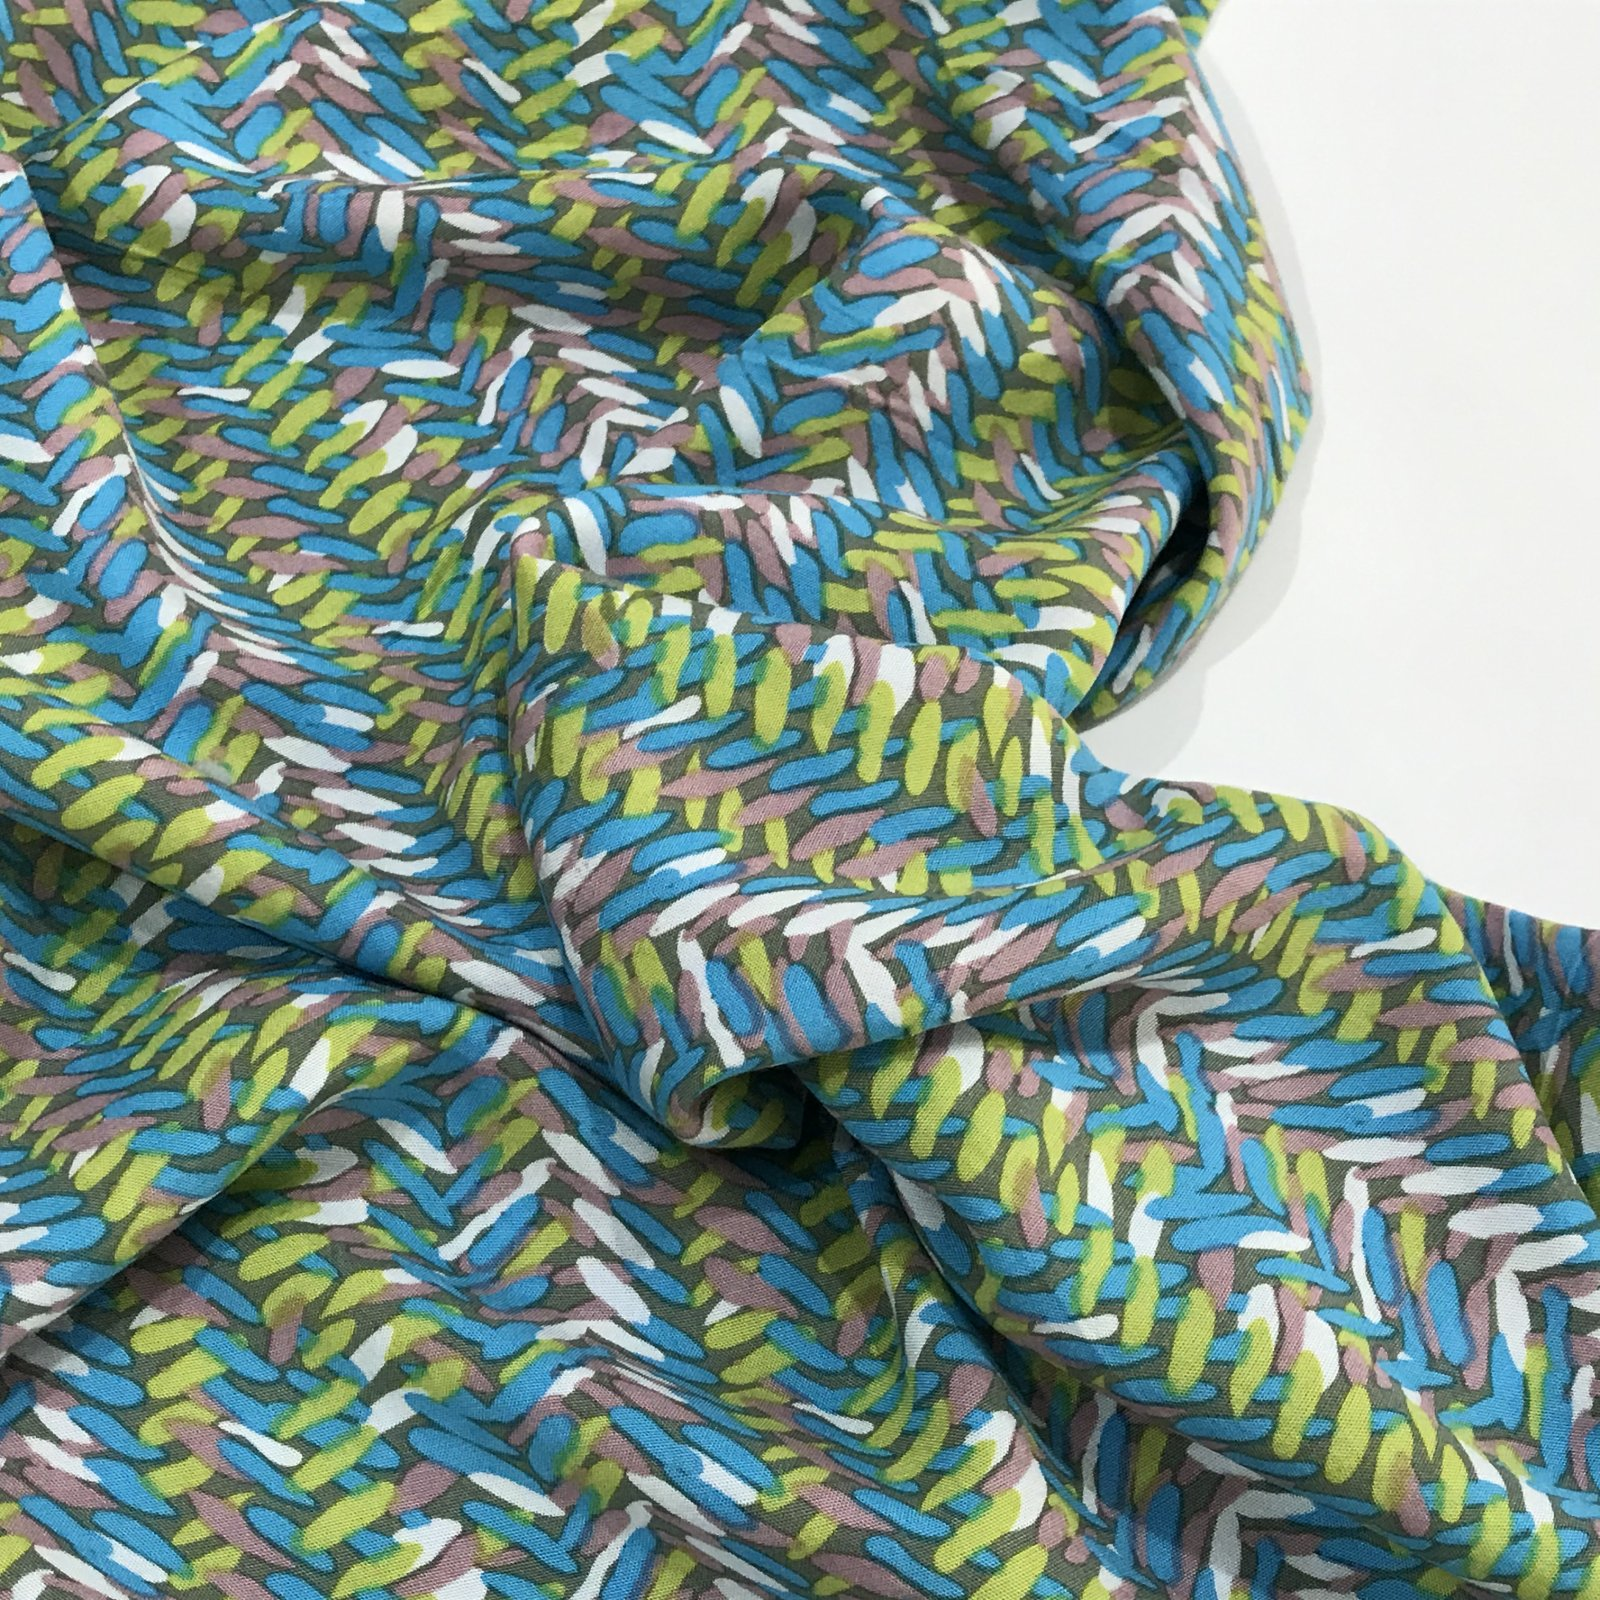 Bali Rayon Print - Crosshatch in Turquoise and Lime